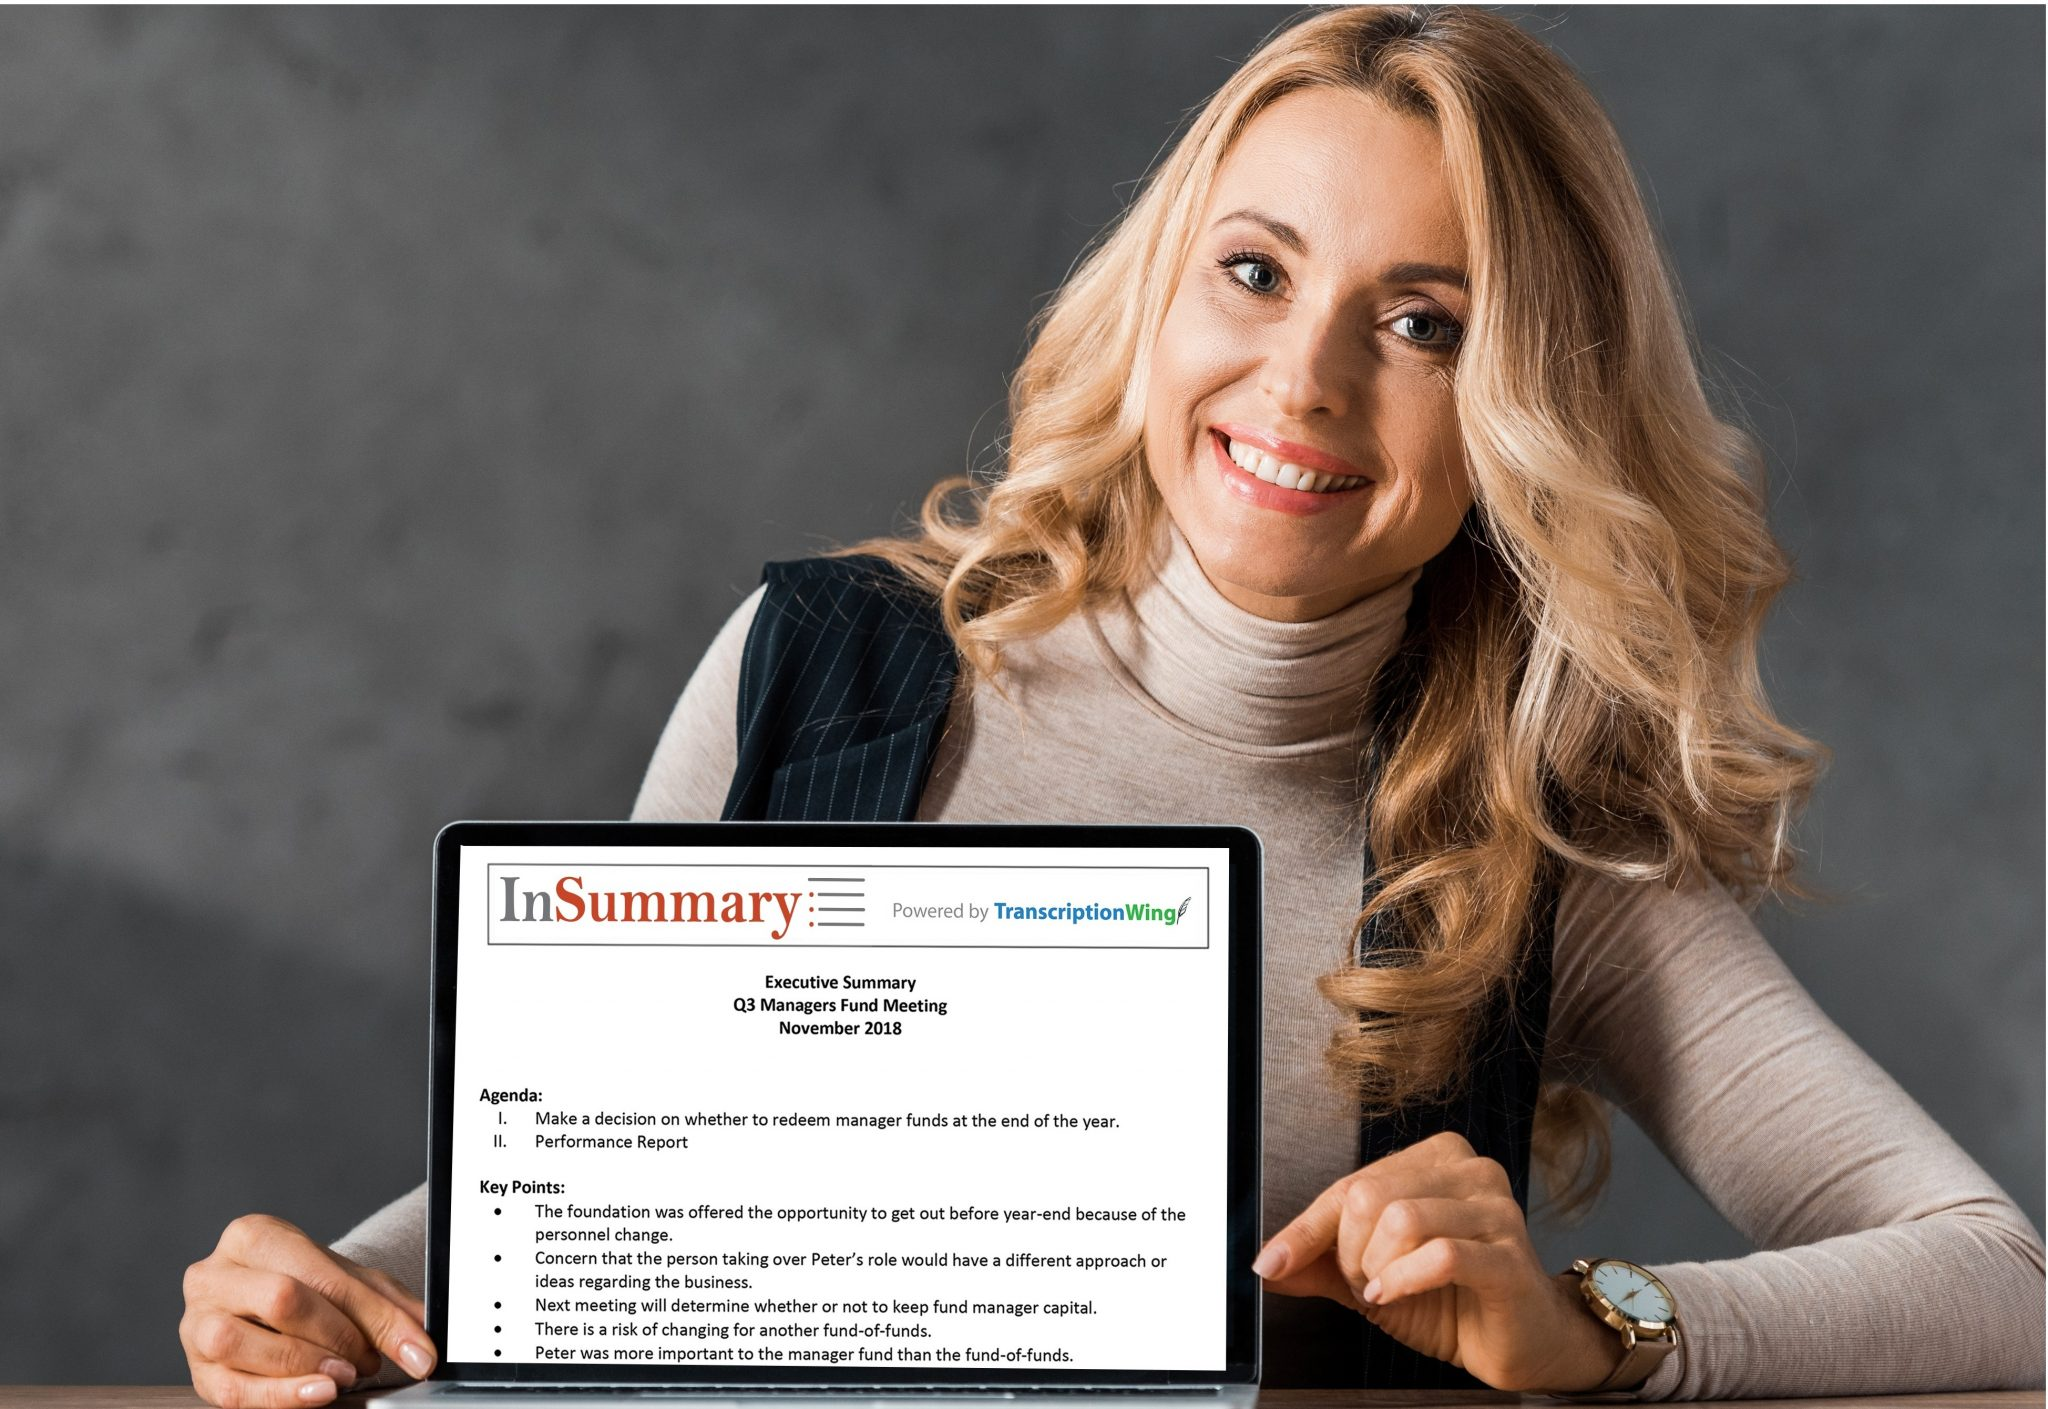 Editor presenting meeting minutes transcribed into a summarized report using TranscriptionWing's InSummary service